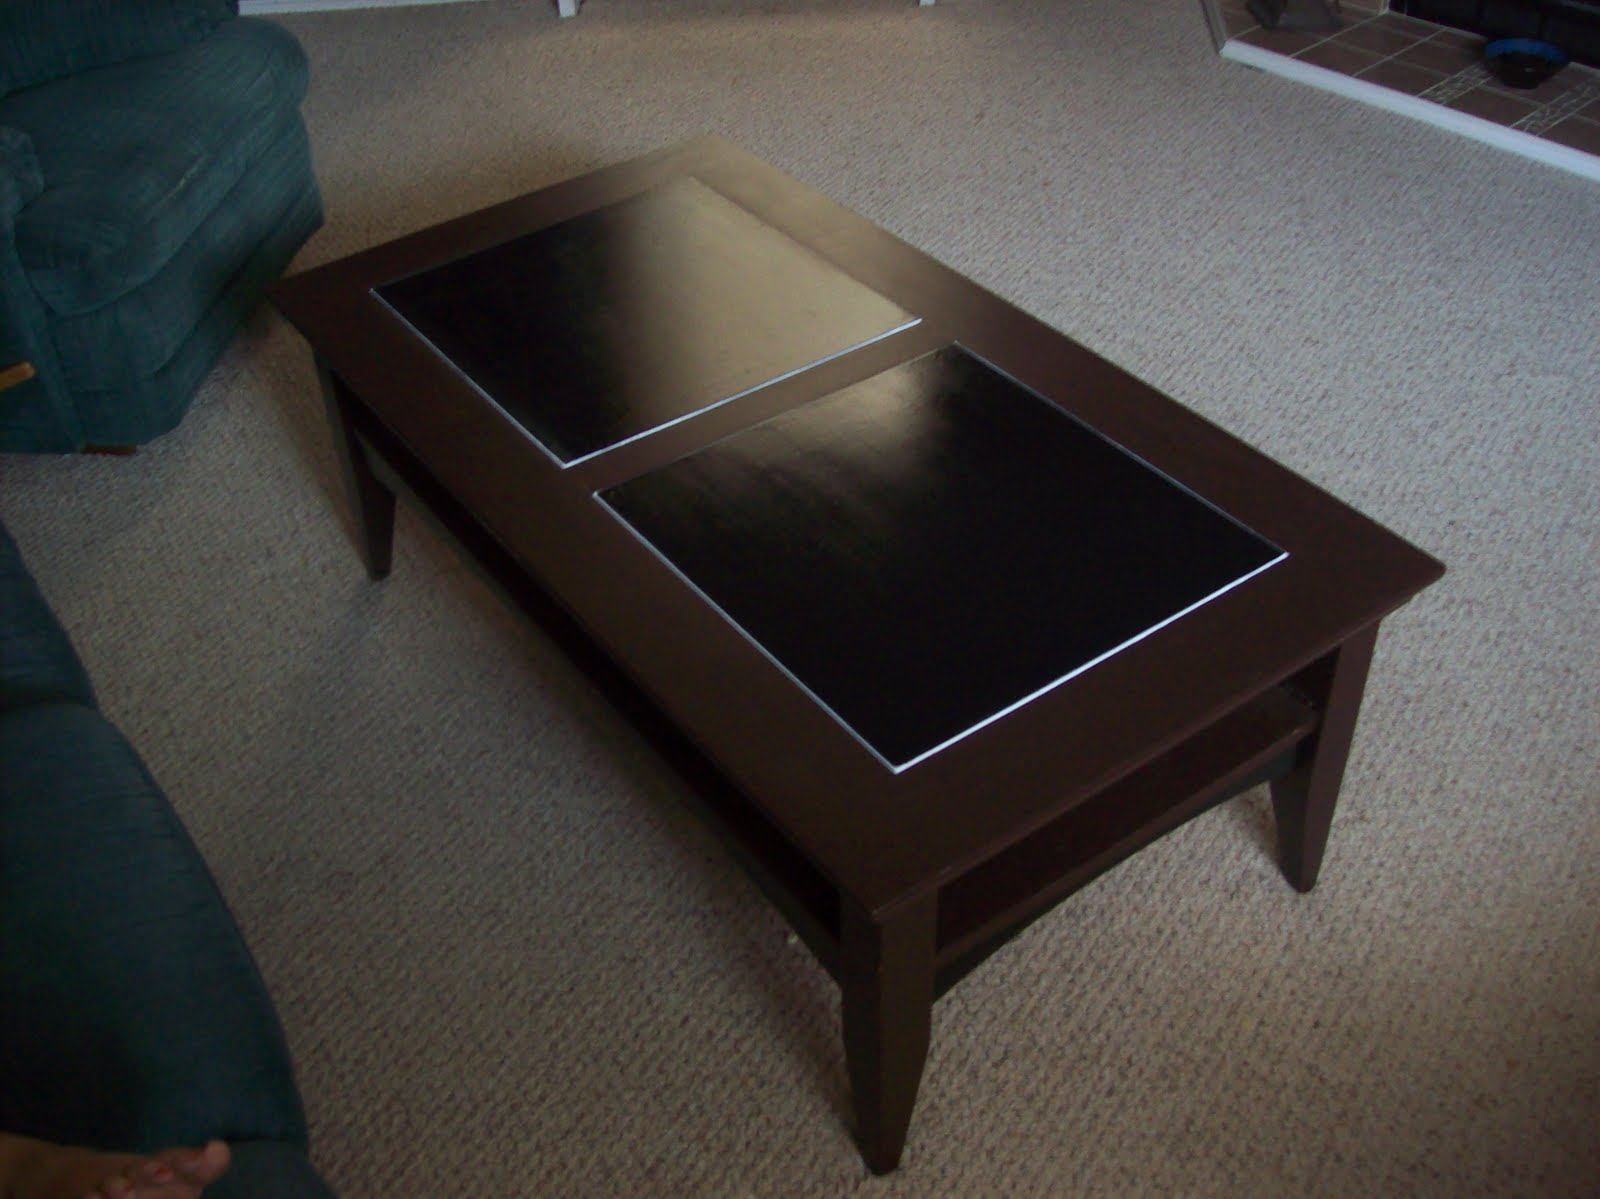 39 new again 39 restorations coffee table refurbish